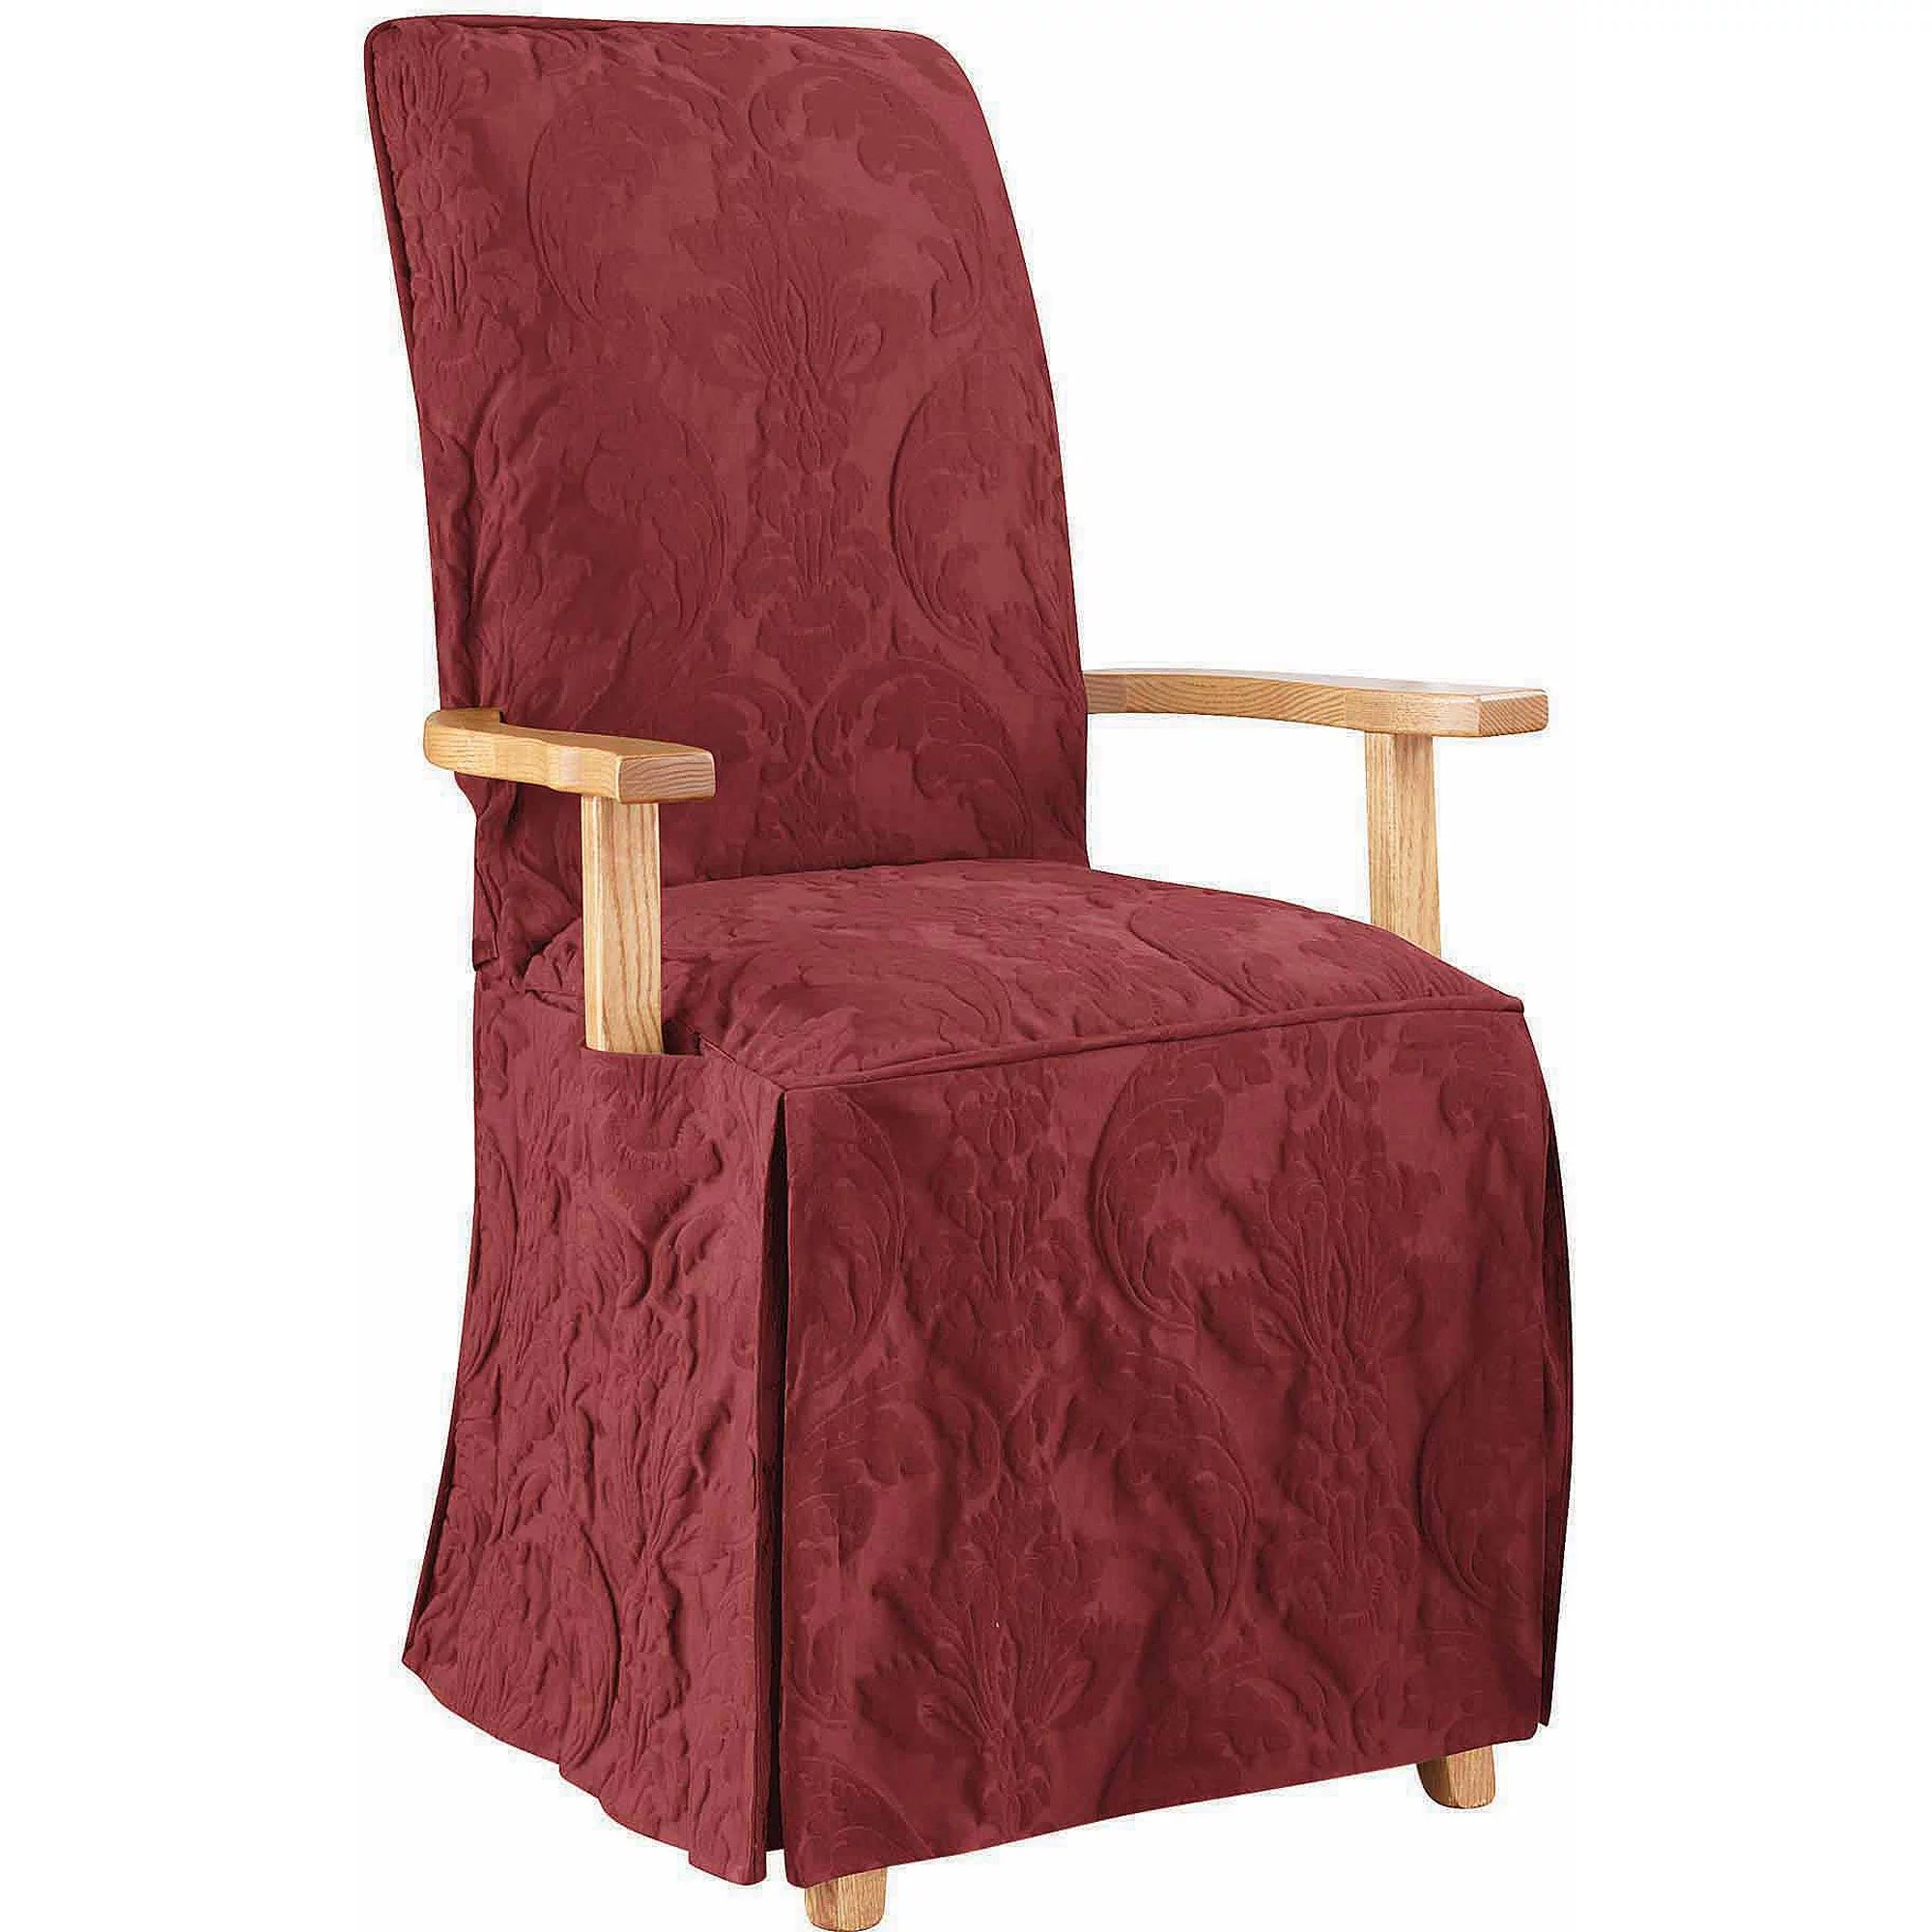 Surefit Chair Covers Sure Fit Matelasse Damask Arm Long Dining Chair Slipcover